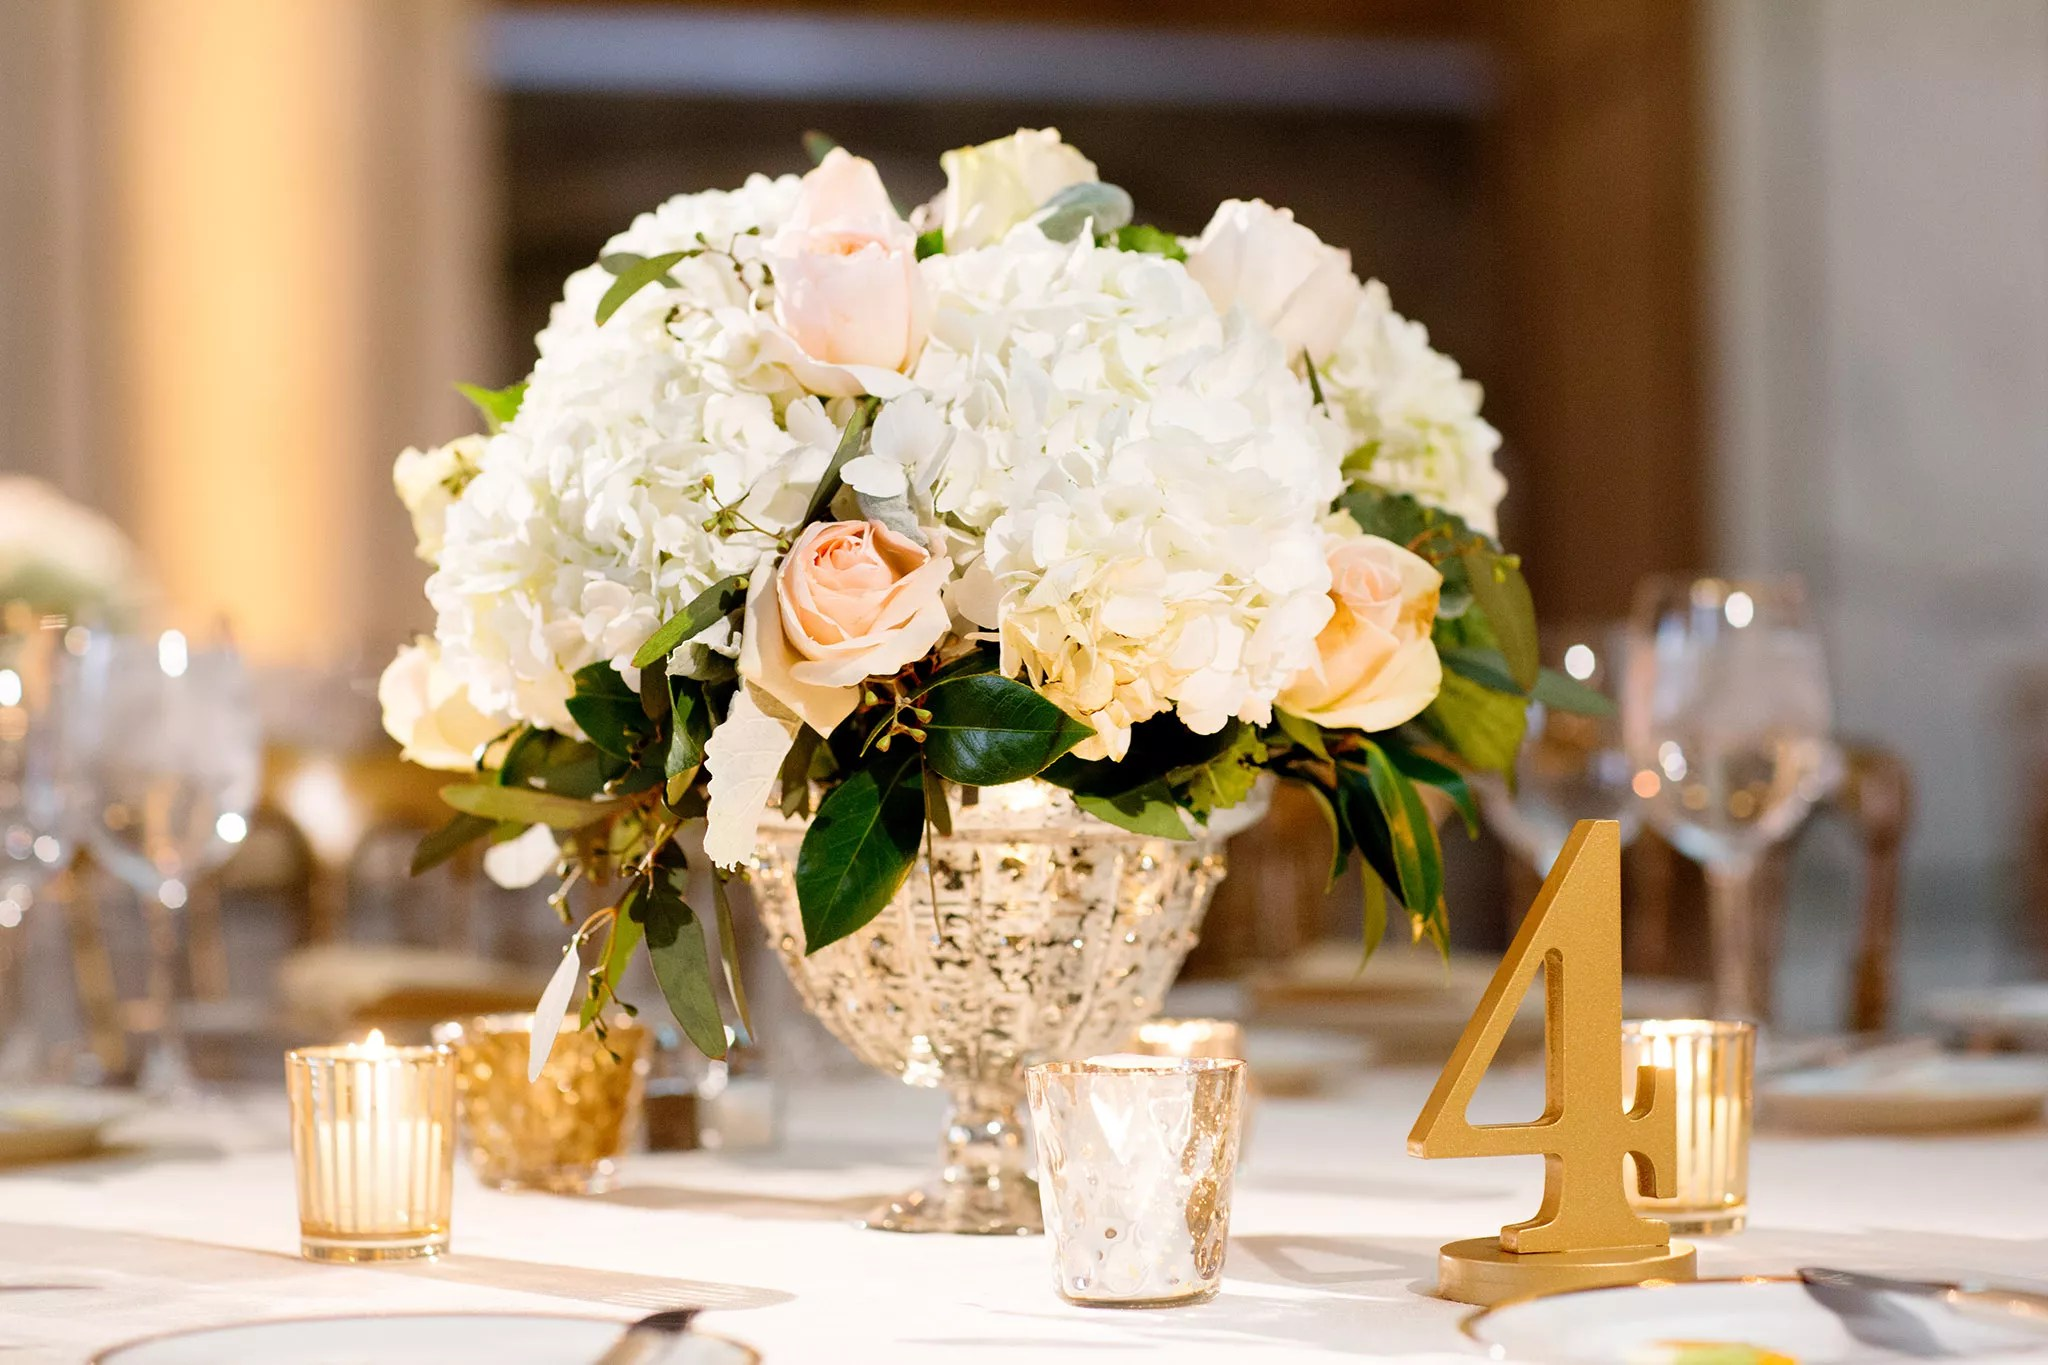 Neutral Flowers In Mercury Glass Centerpiece